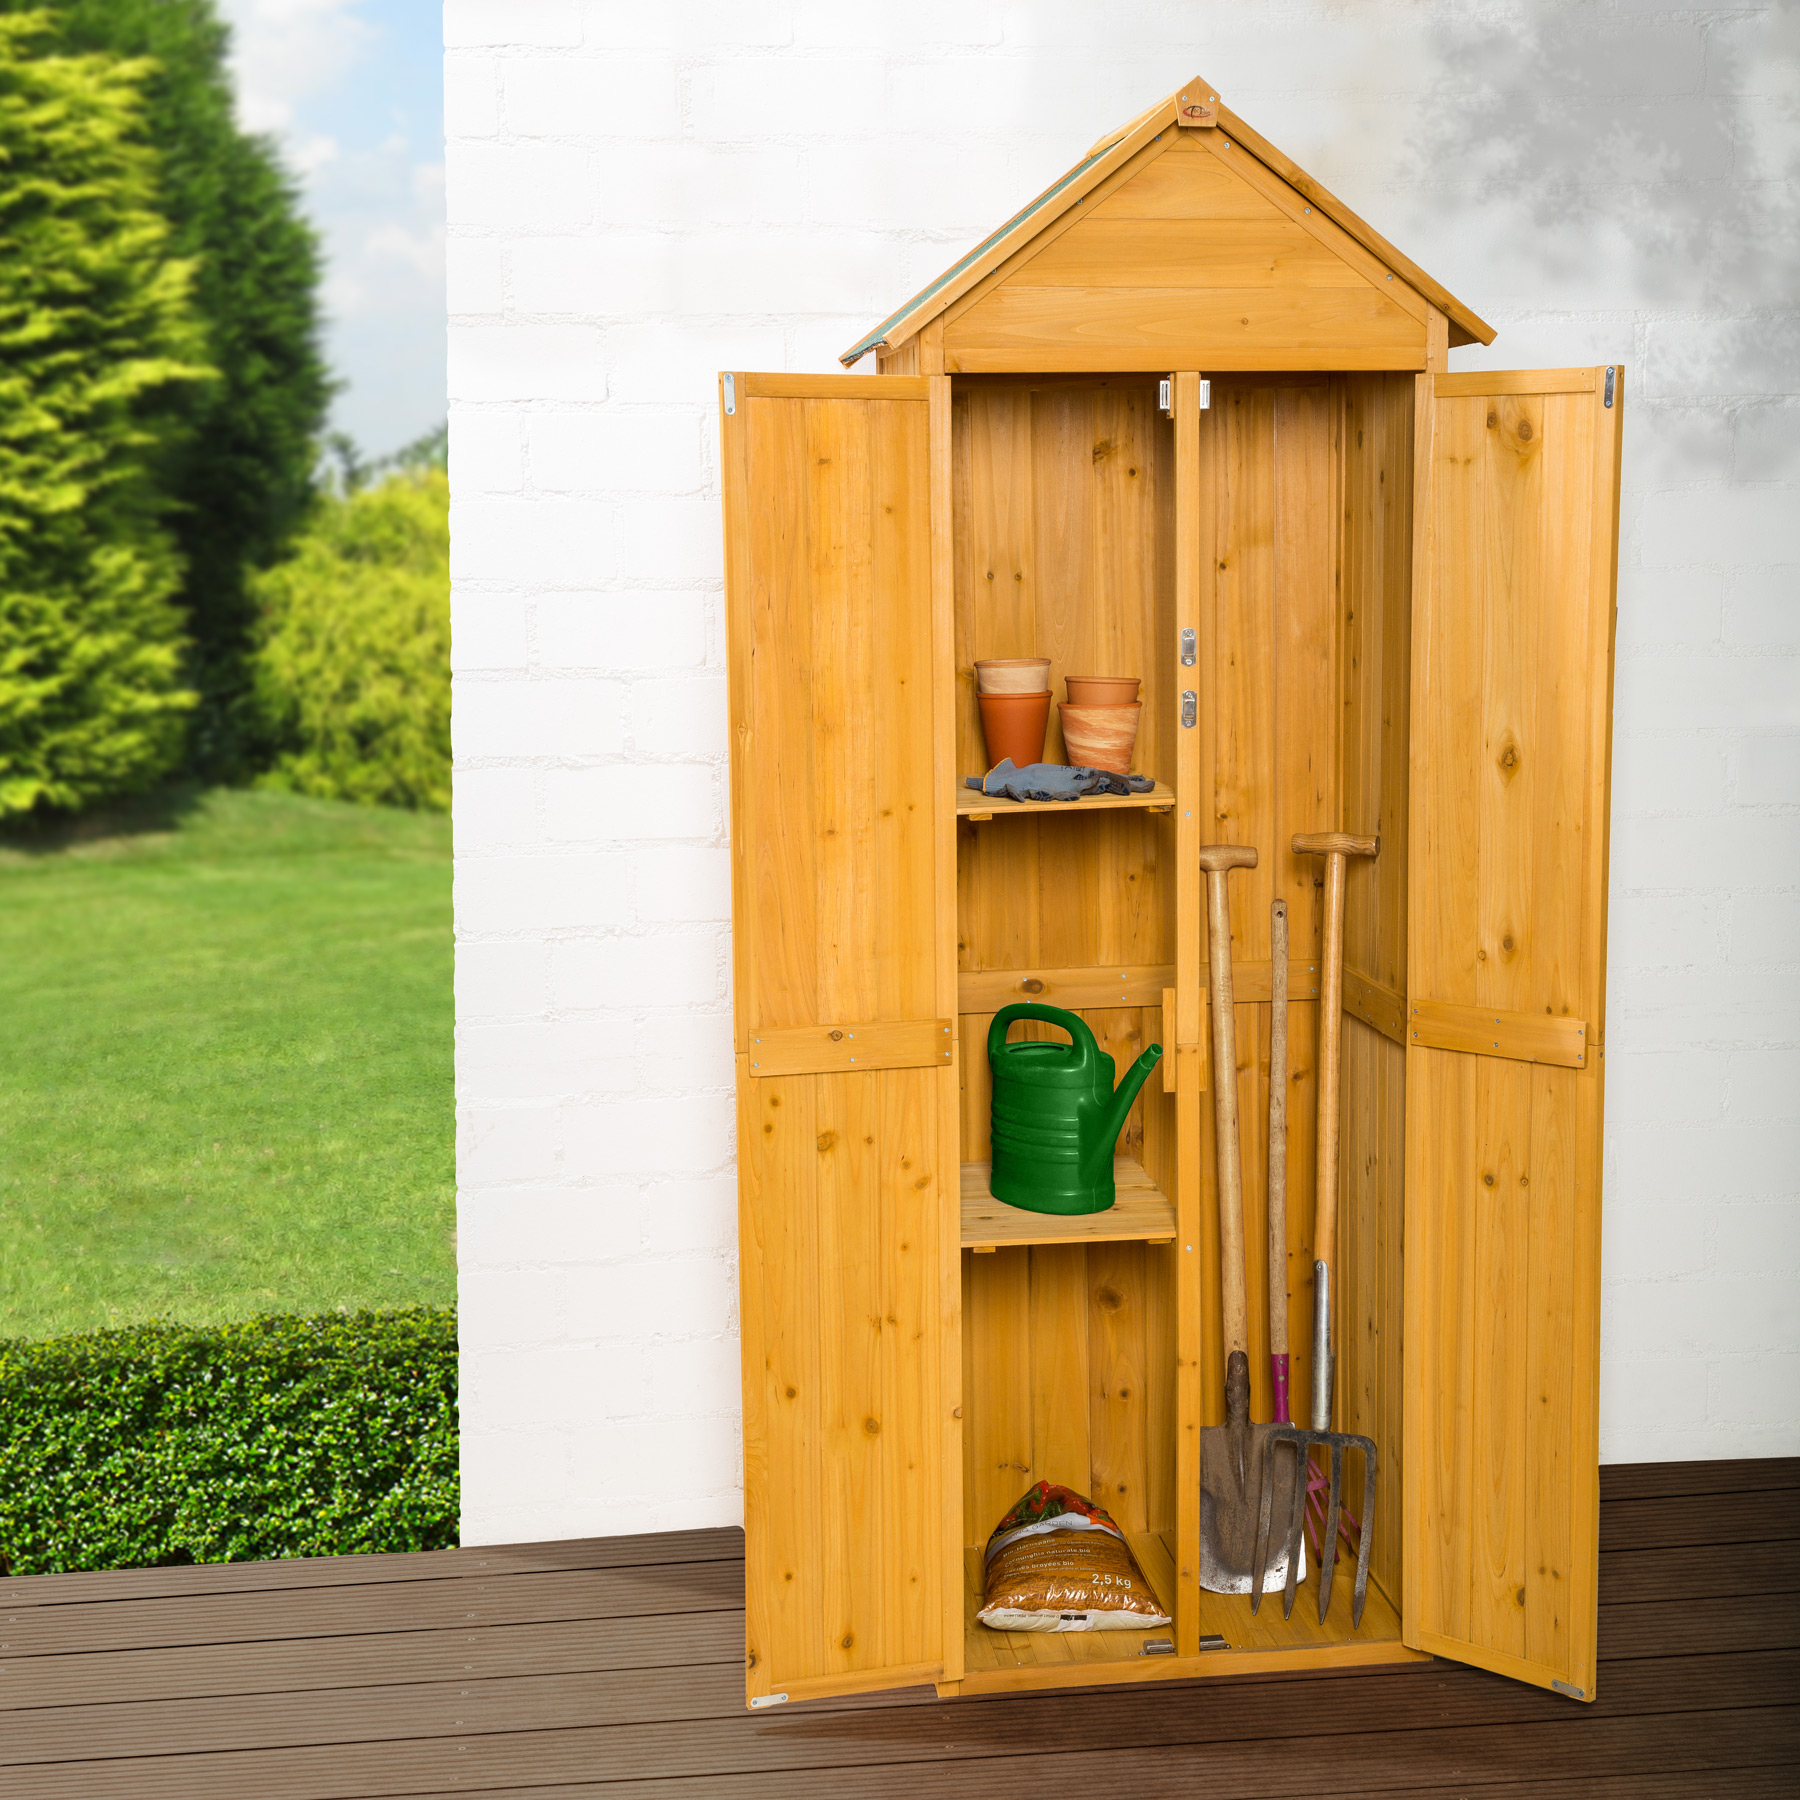 Wooden outdoor garden cabinet utility storage tools shelf box shed piched roof - Armoire de jardin solide ...